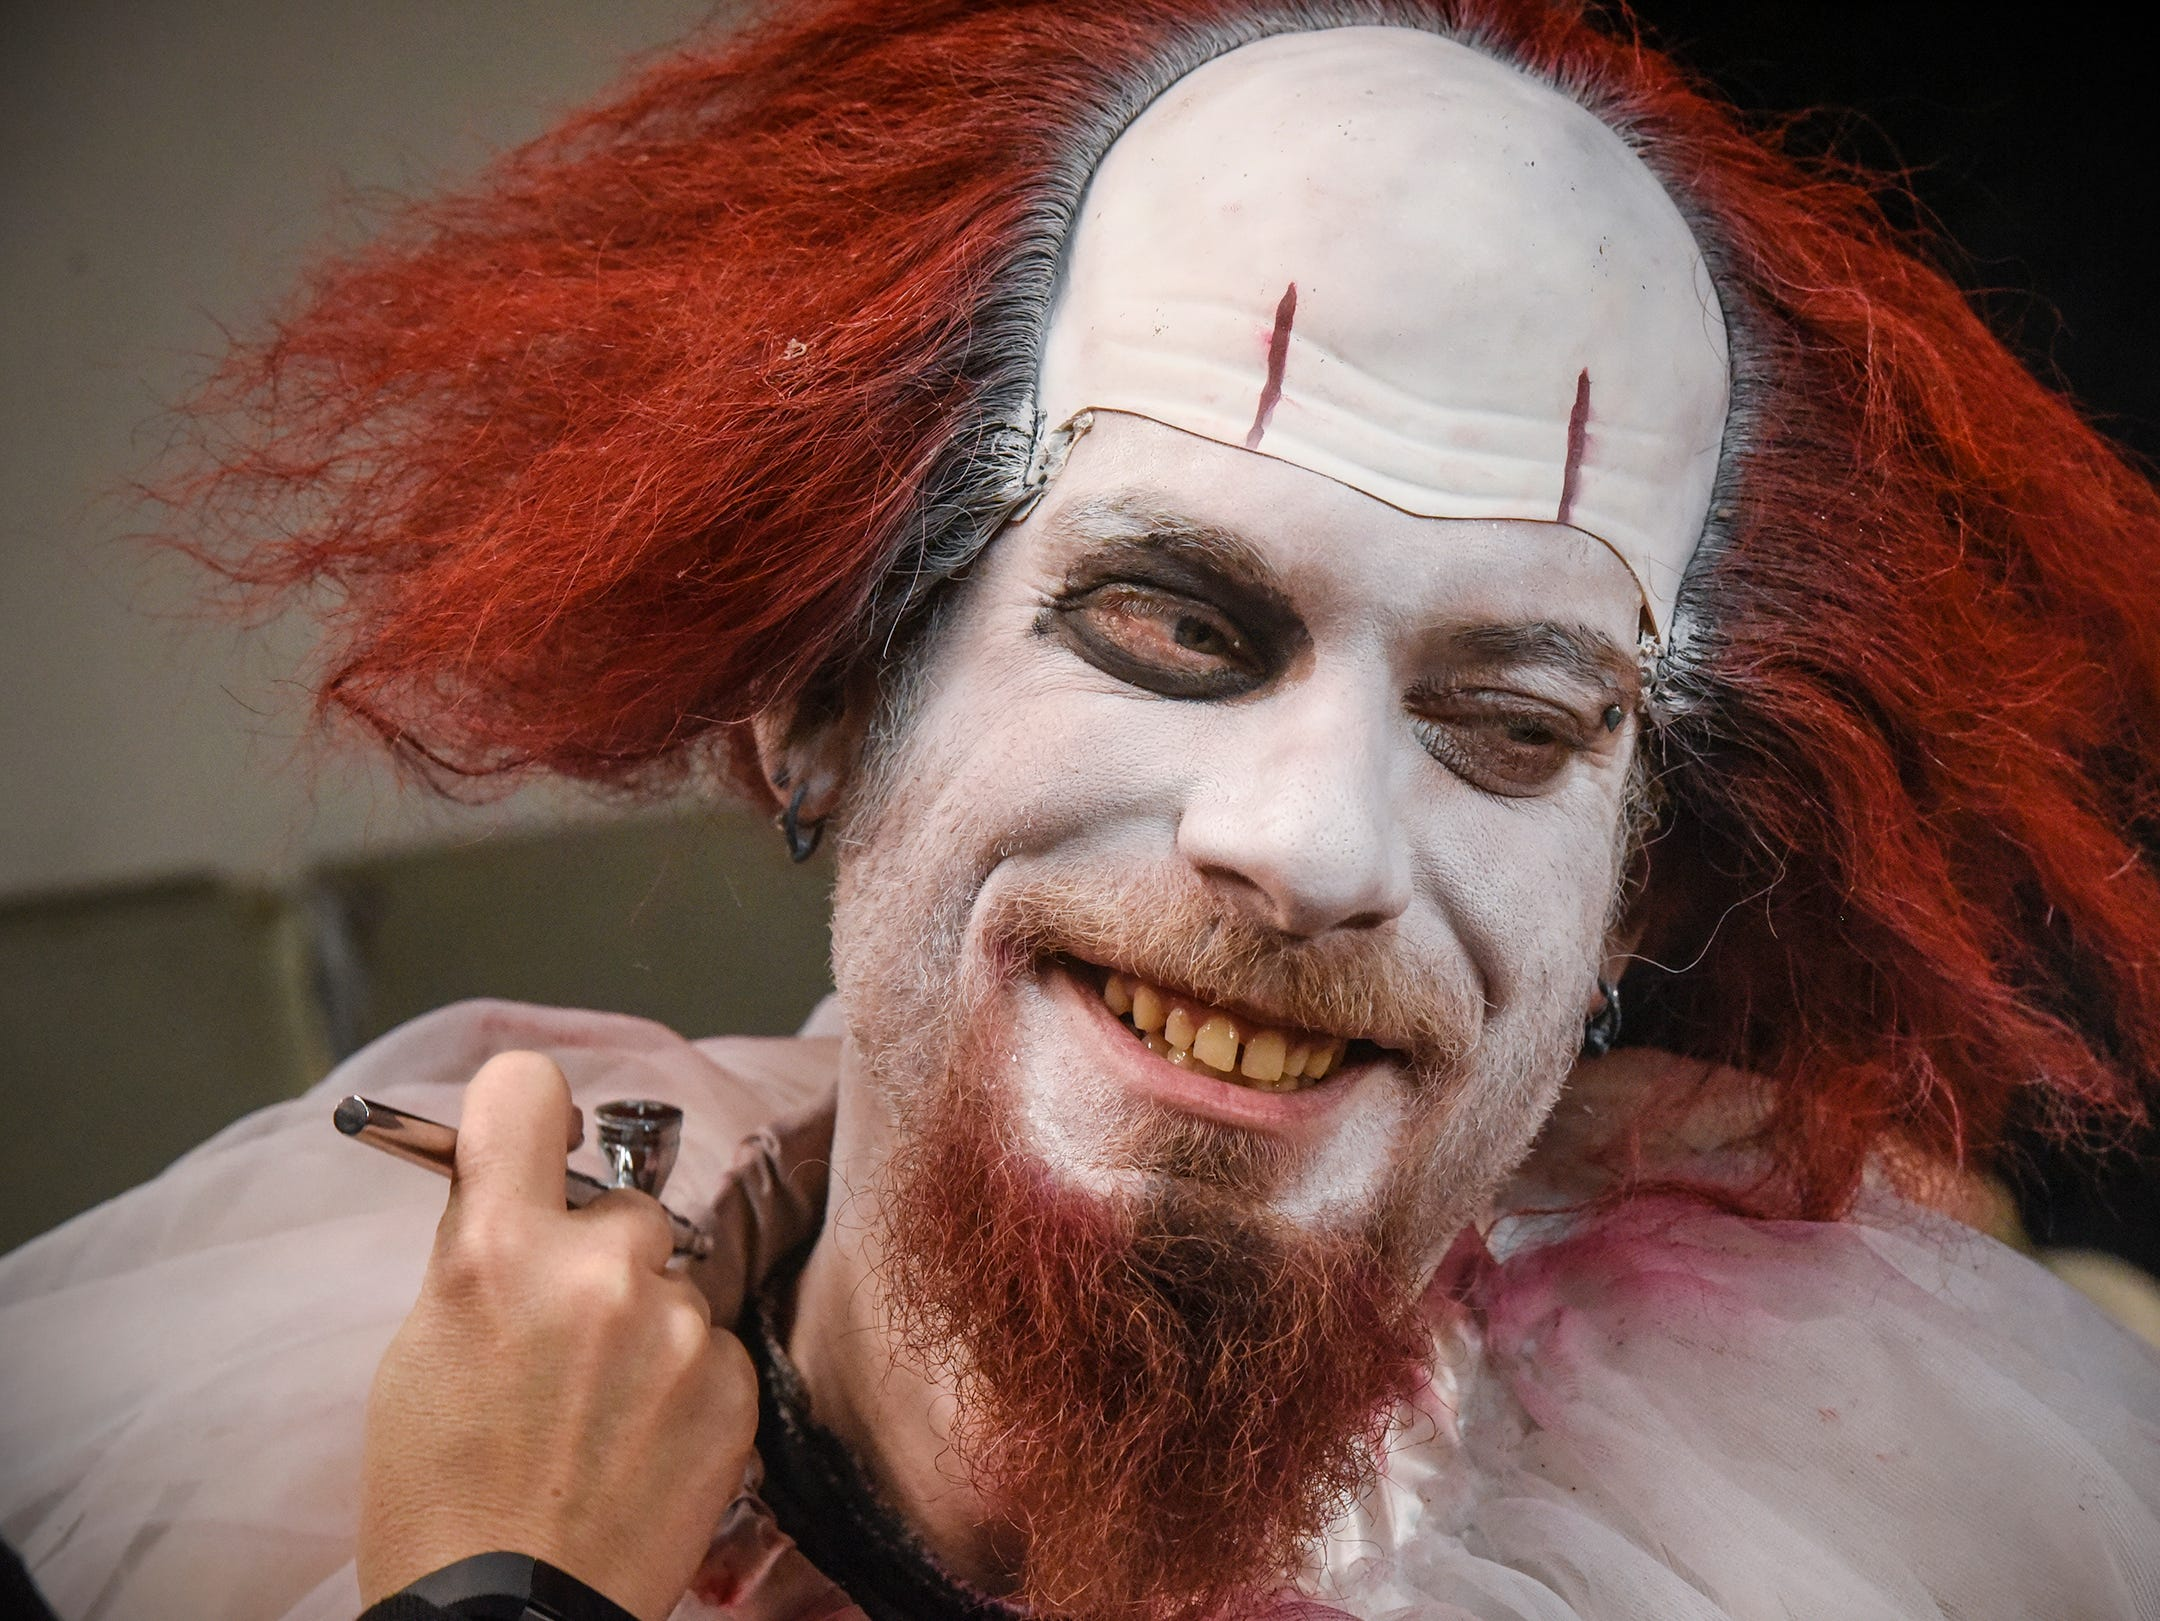 Cory Jolly smiles while sitting for makeup before performing as Pennywise Thursday, Oct. 18, at Molitor's Haunted Acres in Sauk Rapids.